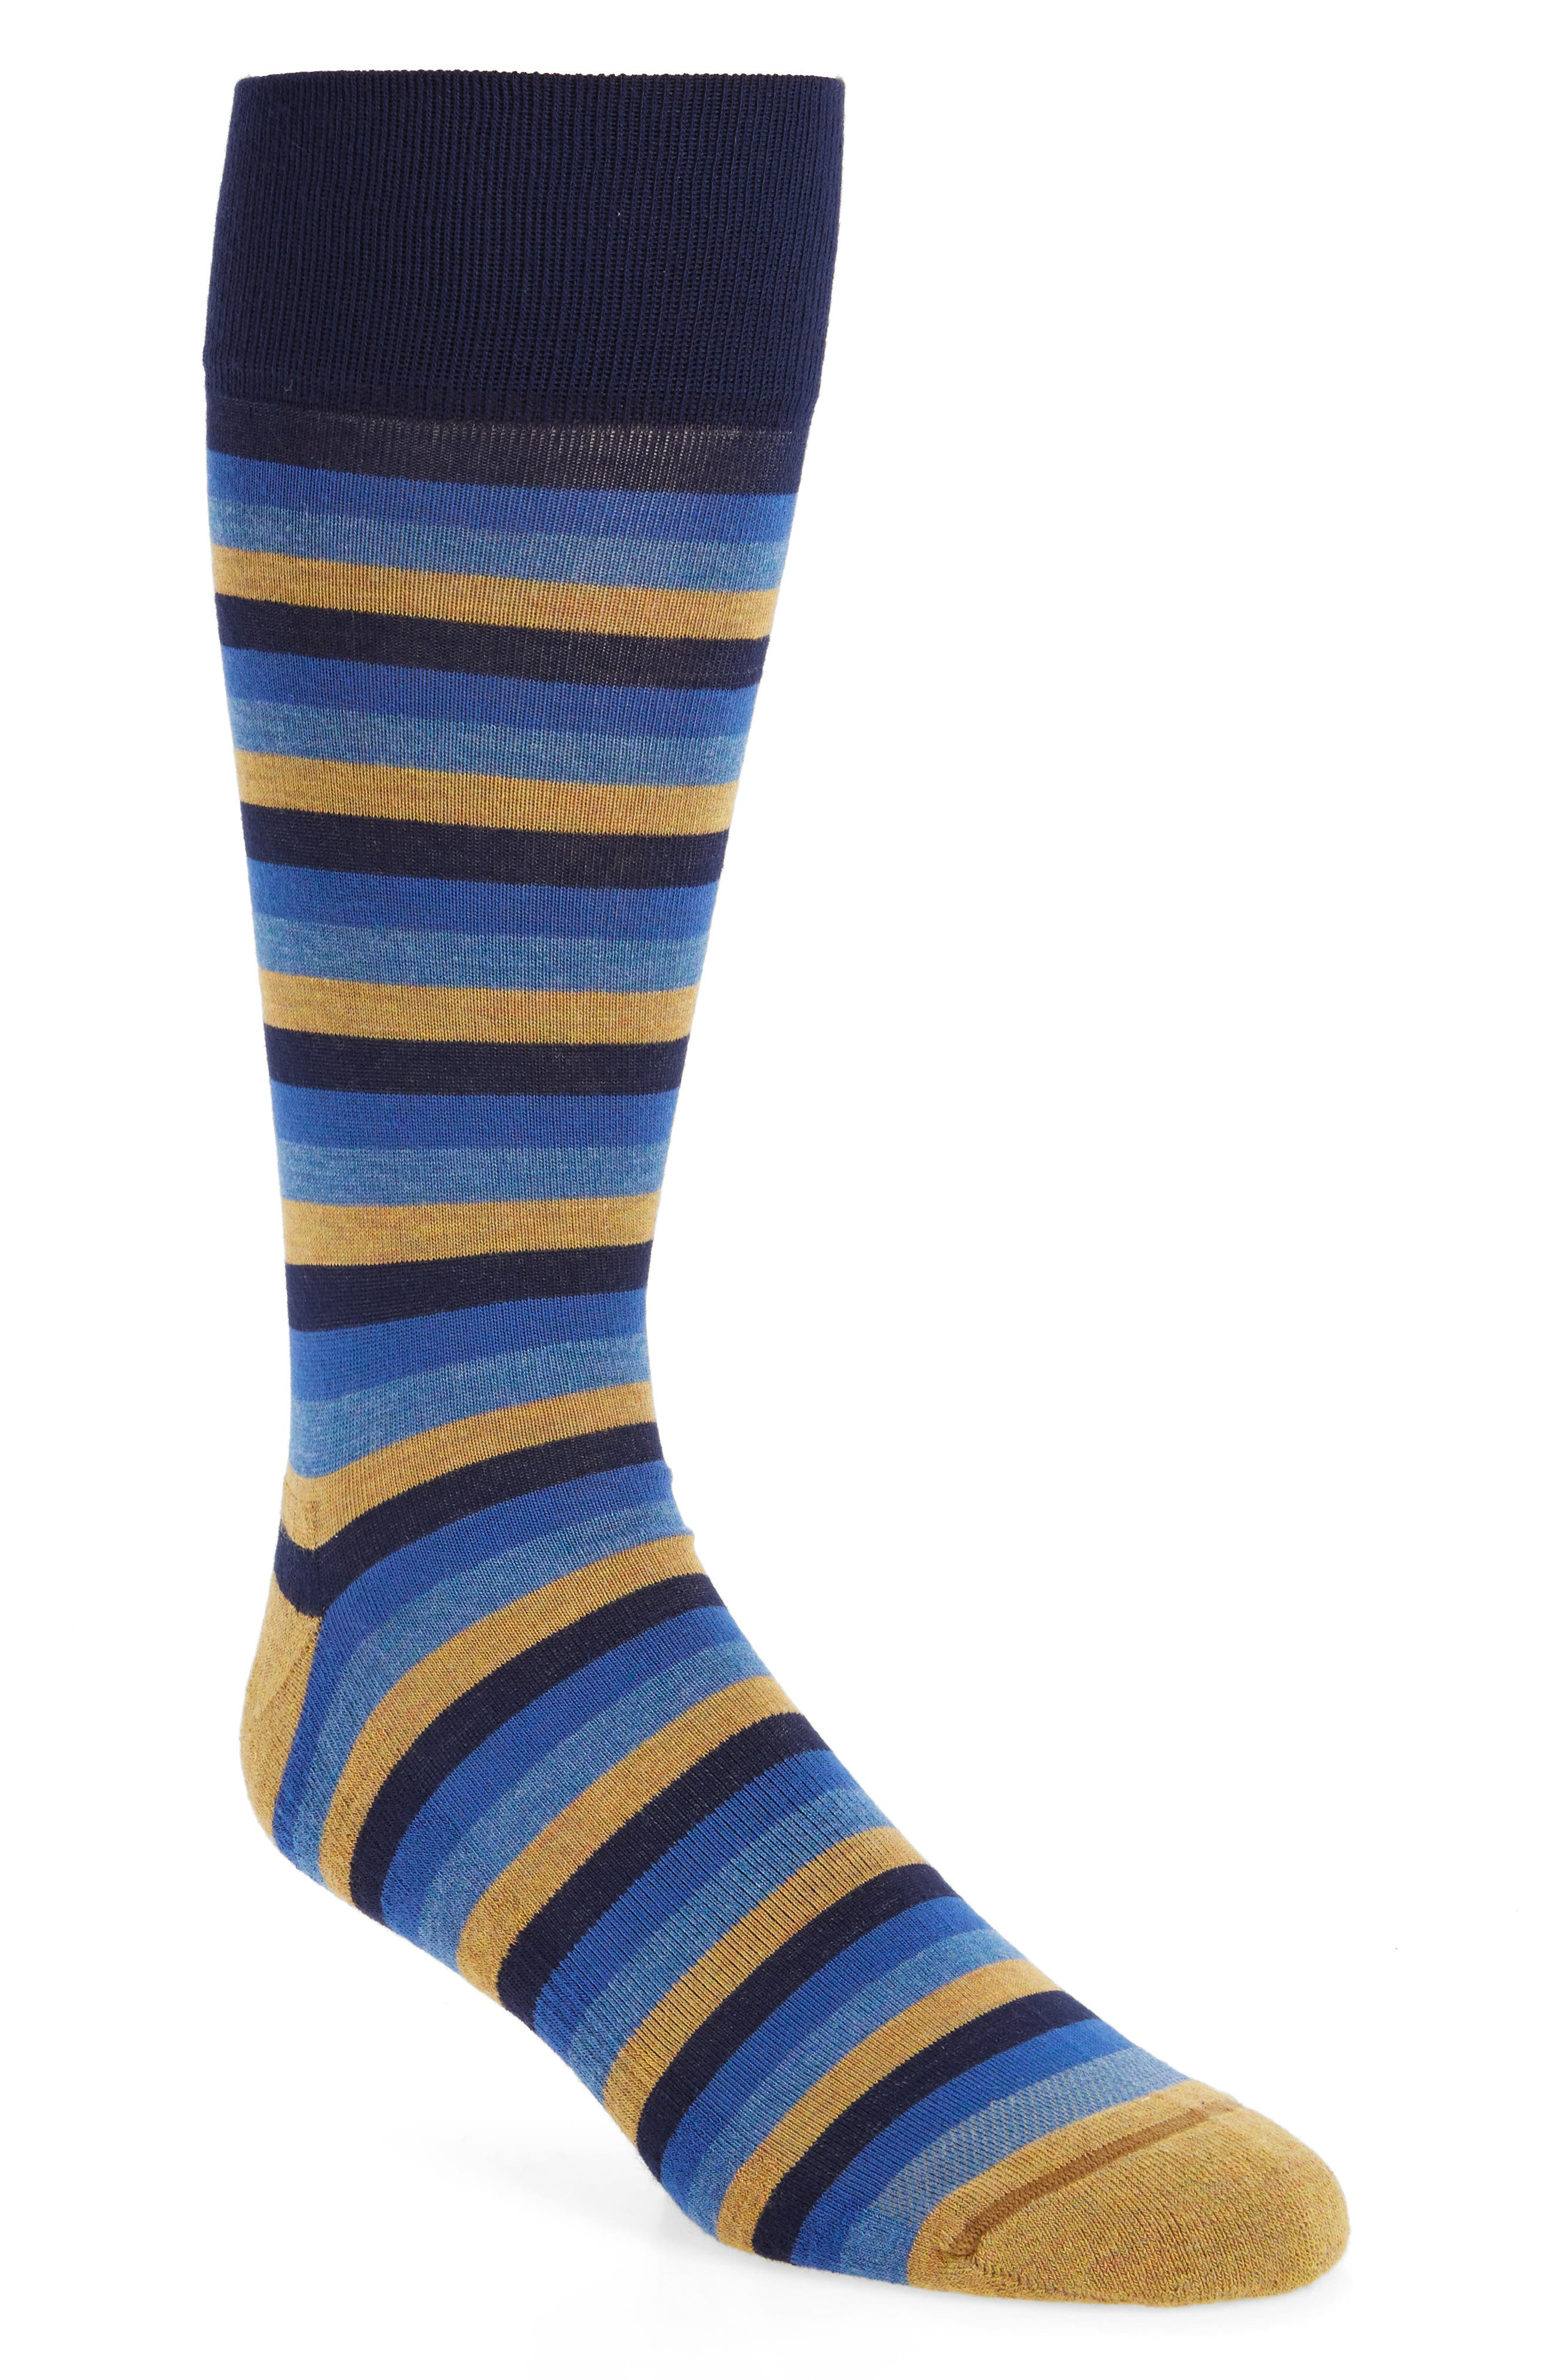 Stripe Socks,                         Main,                         color, 410